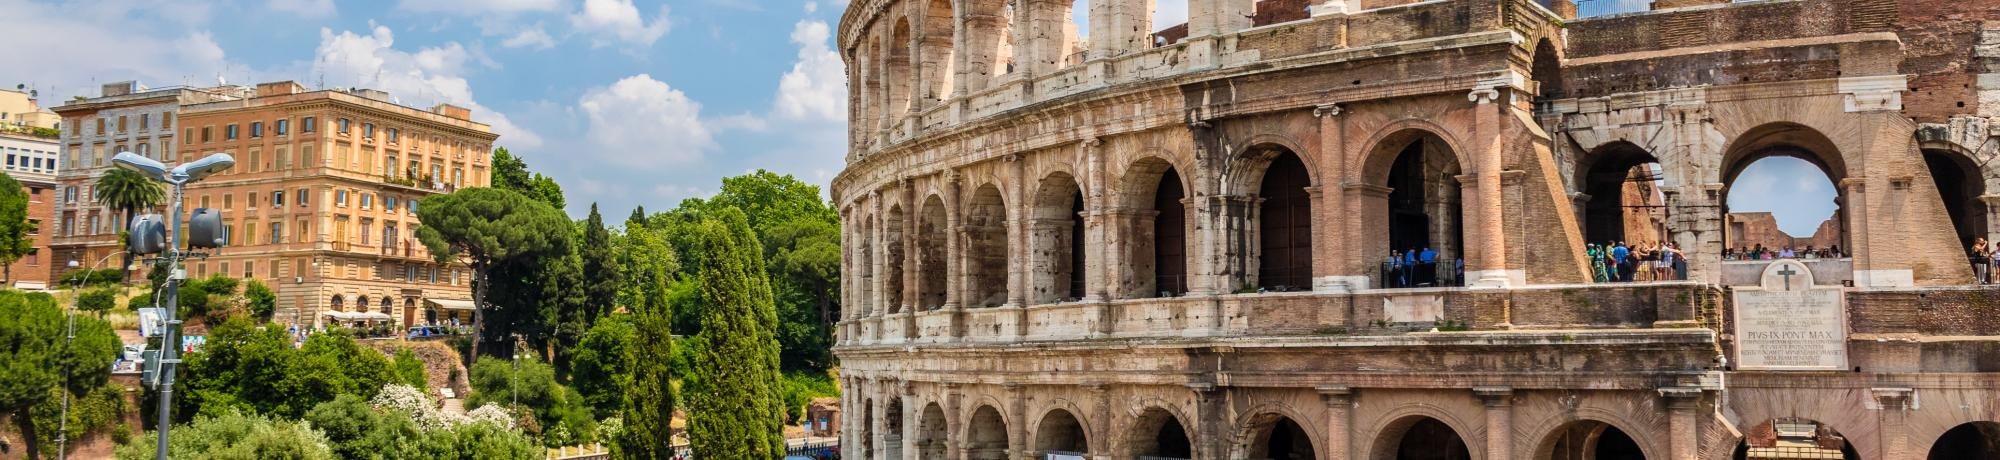 UC Davis Study Abroad, Seminar Abroad Italy, Rome - Art and the City Program, Header Image, Cost Page